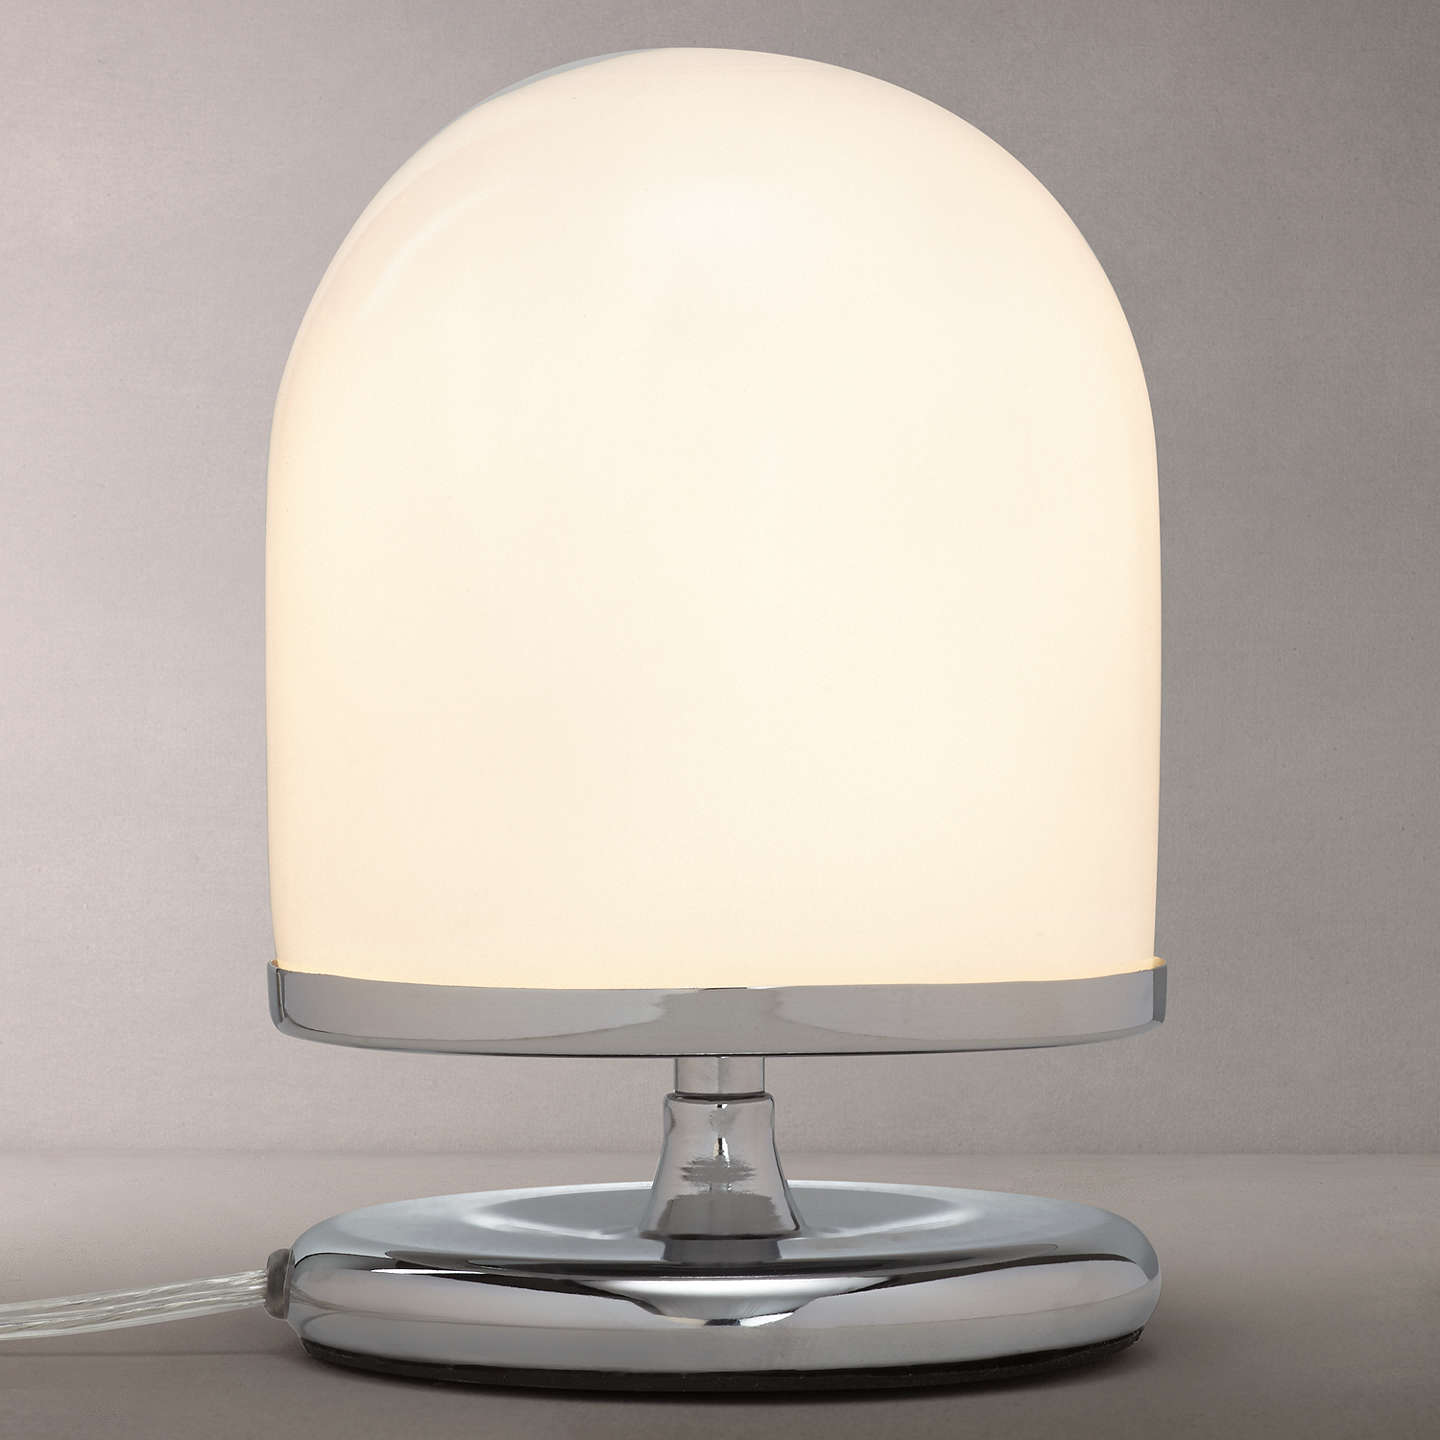 John lewis pod 3 stage touch table lamp polished chrome at john lewis buyjohn lewis pod 3 stage touch table lamp polished chrome online at johnlewis aloadofball Gallery